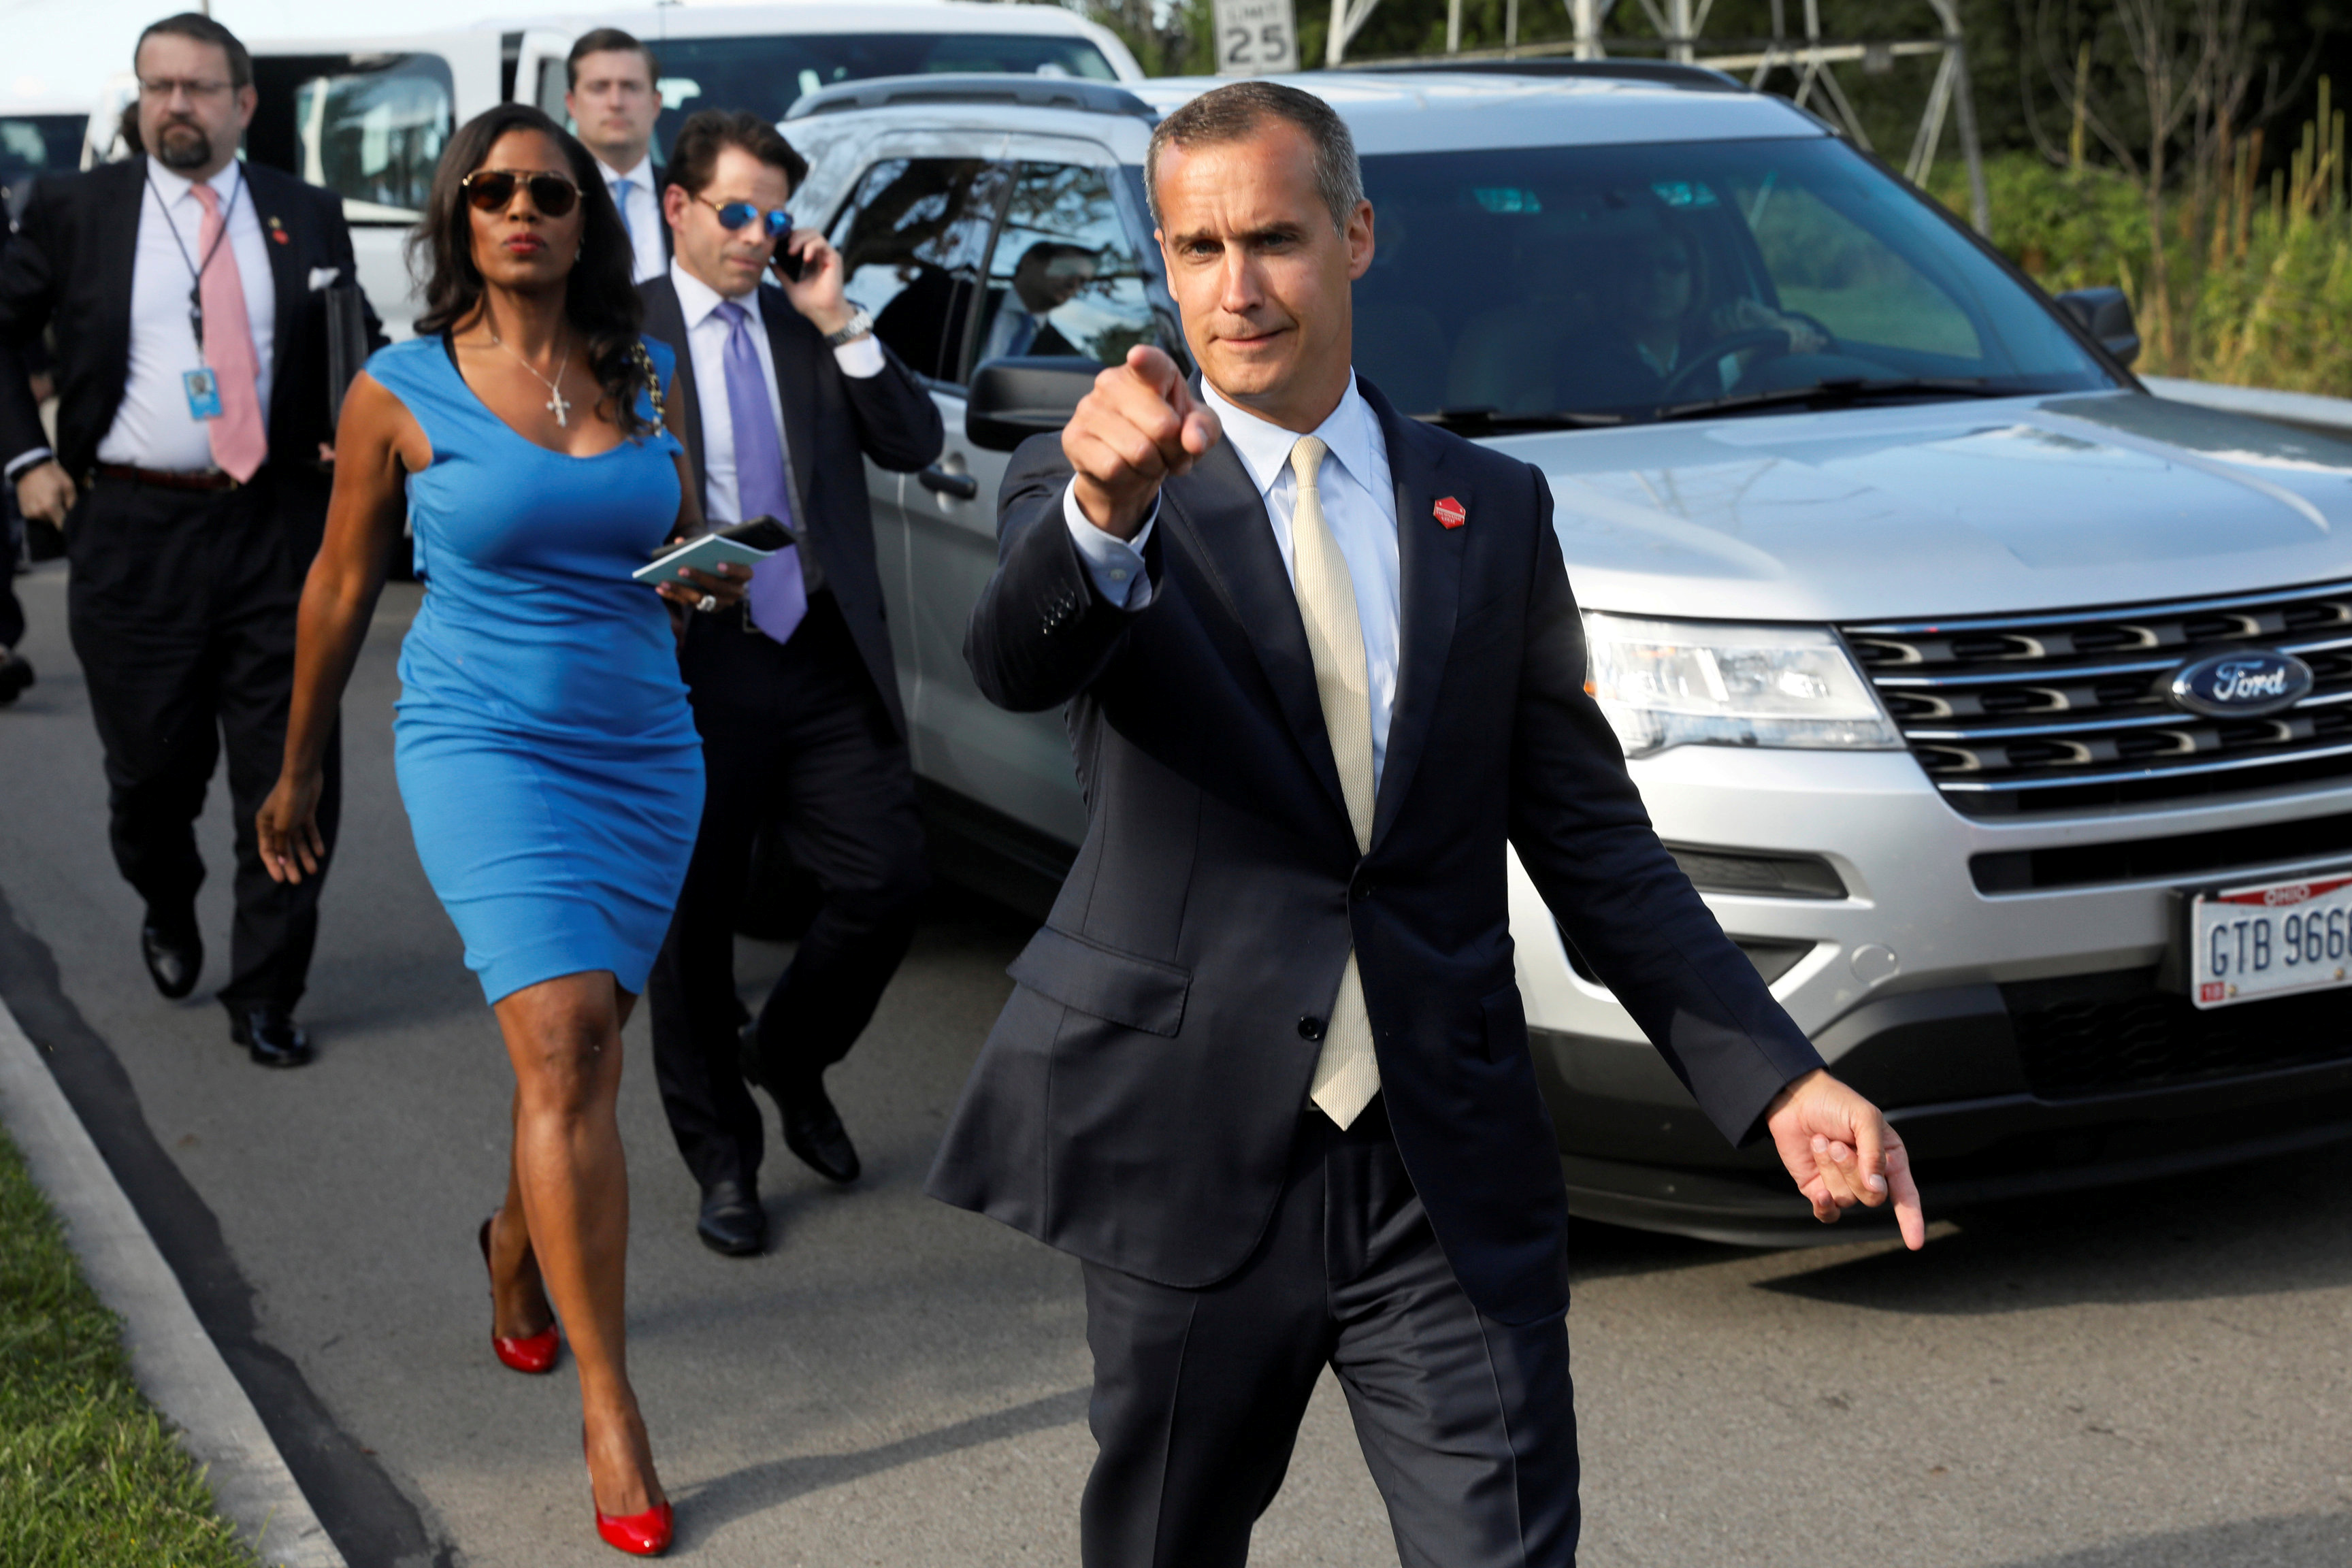 Former campaign manager Corey Lewandowski (C) says hello to reporters as he and White House advisors Sebastian Gorka (from L), Omarosa Manigault, White House Staff Secretary Rob Porter and Communications Director Anthony Scaramucci accompany President Trump for an event celebrating veterans at AMVETS Post 44 in Struthers, Ohio, U.S., July 25, 2017. Reuters/Jonathan Ernst